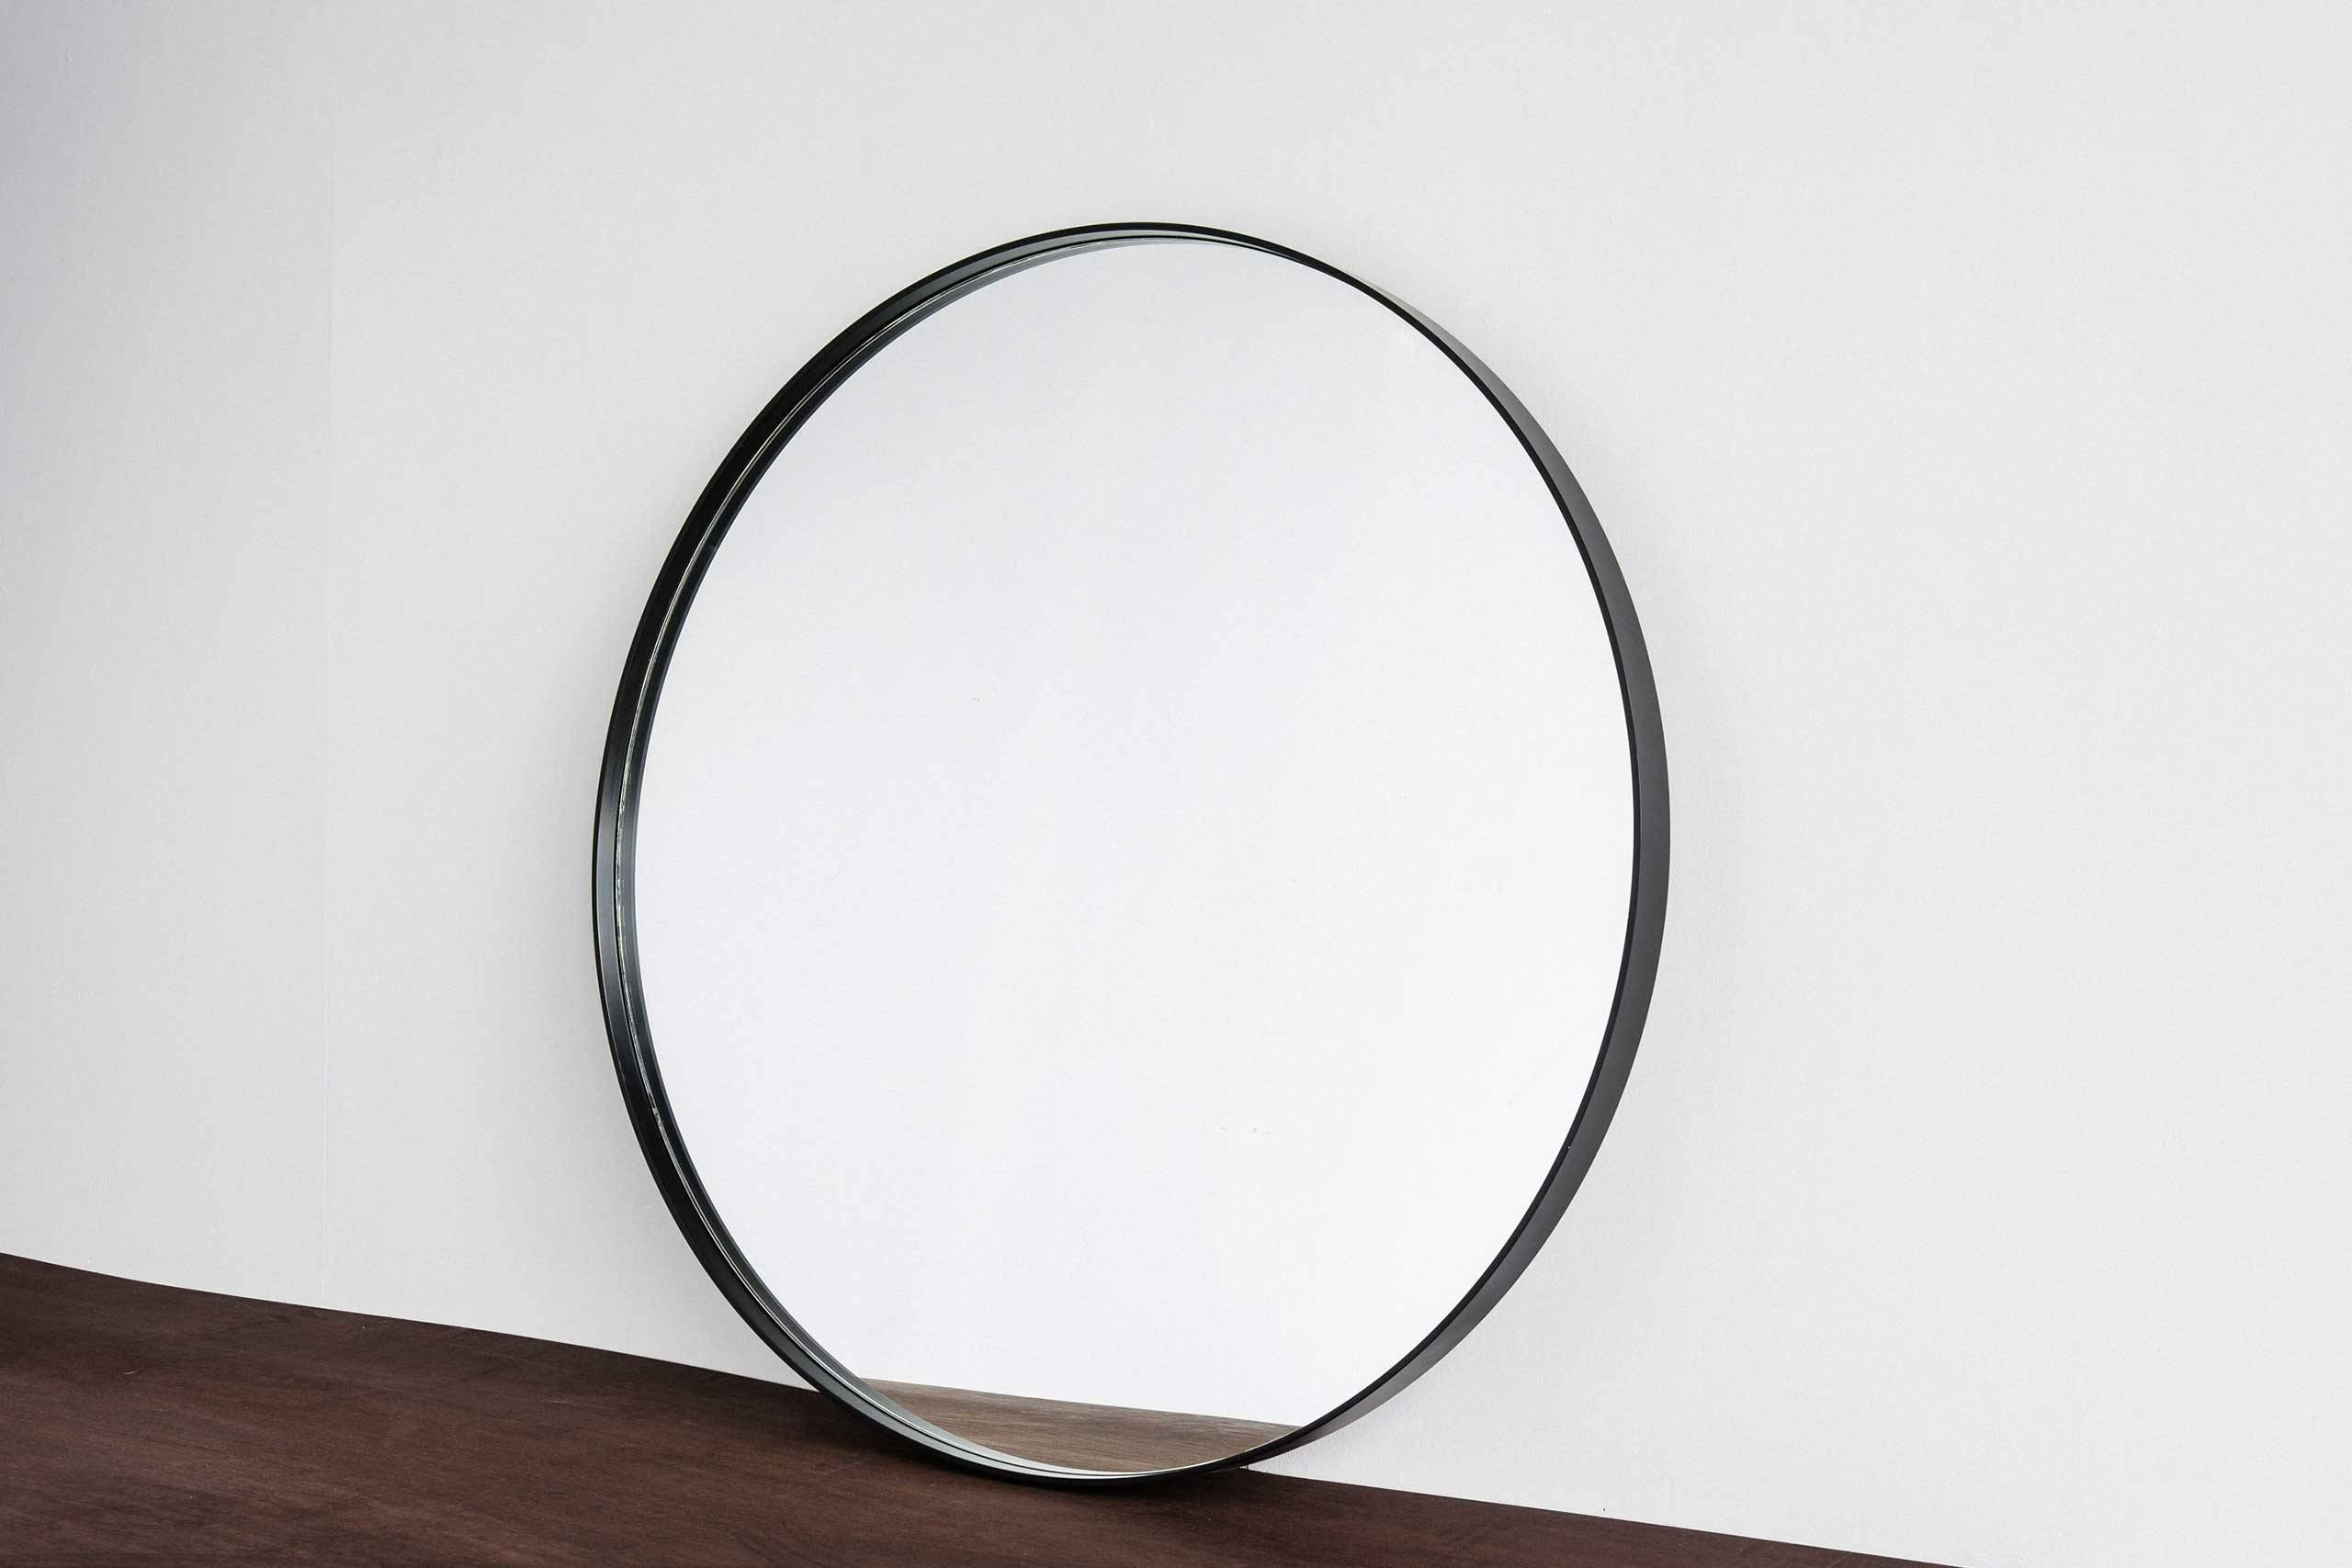 Home Industry | Furniture Designed & Handcrafted In New Zealand. ©2016 intended for Black Circle Mirrors (Image 9 of 25)